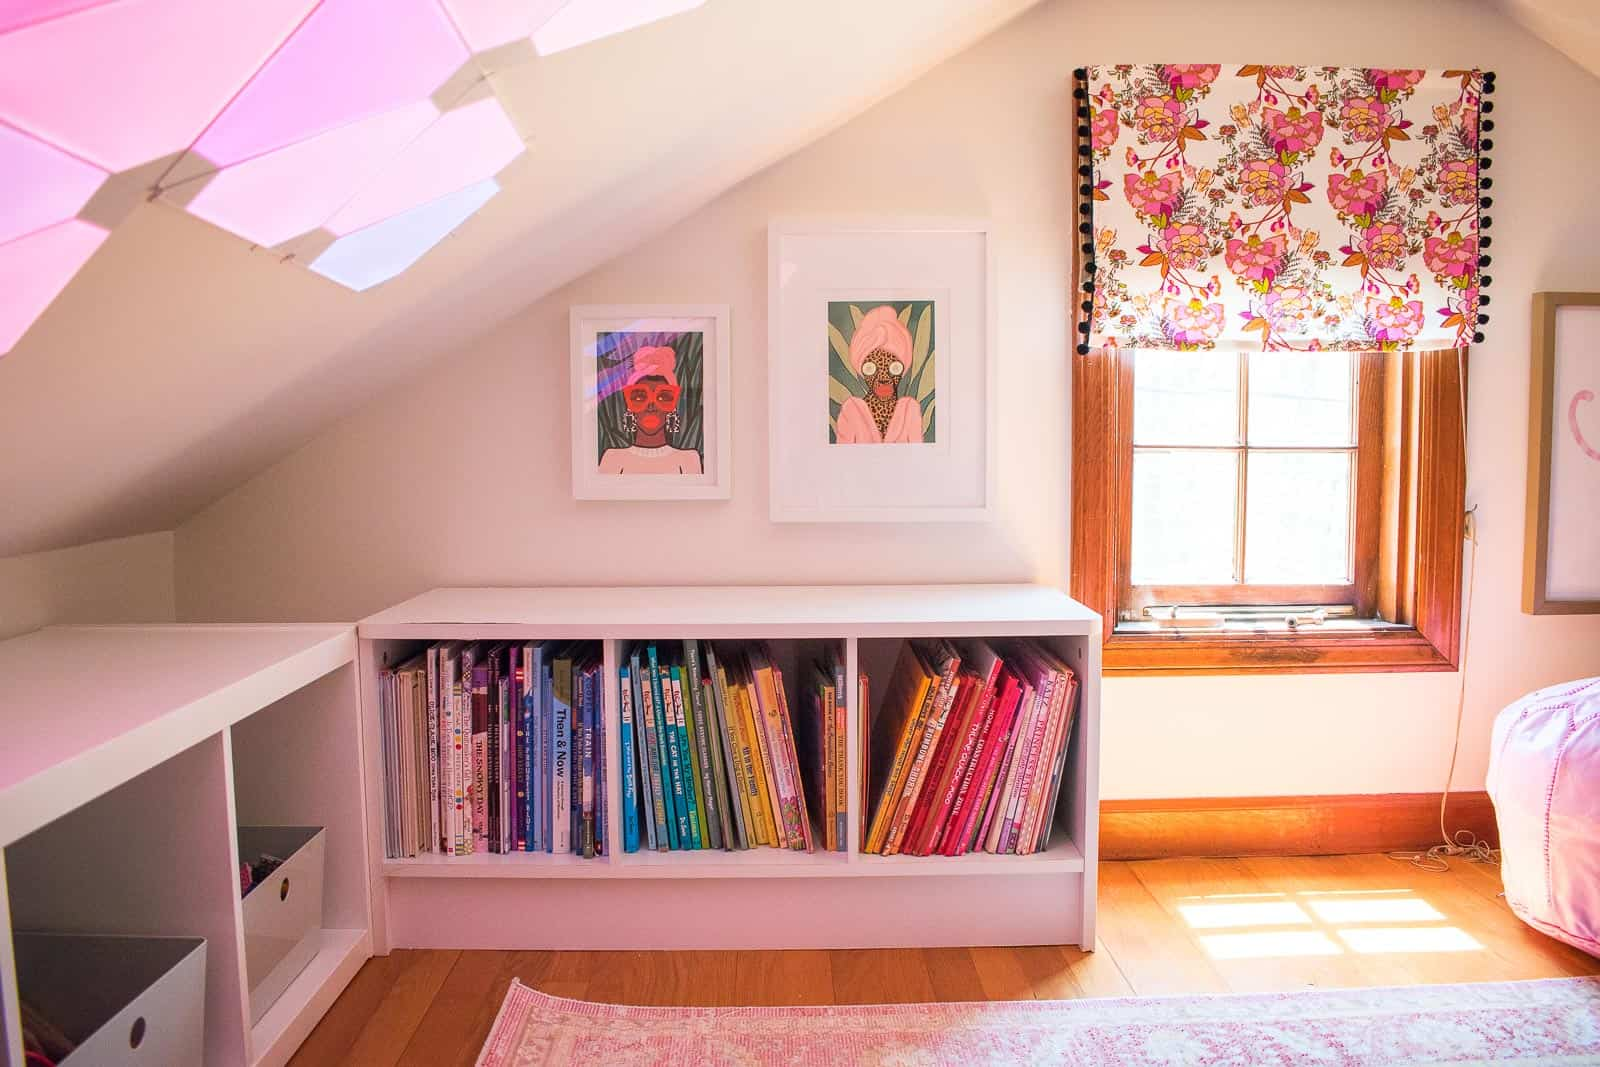 fabric valance in reading nook